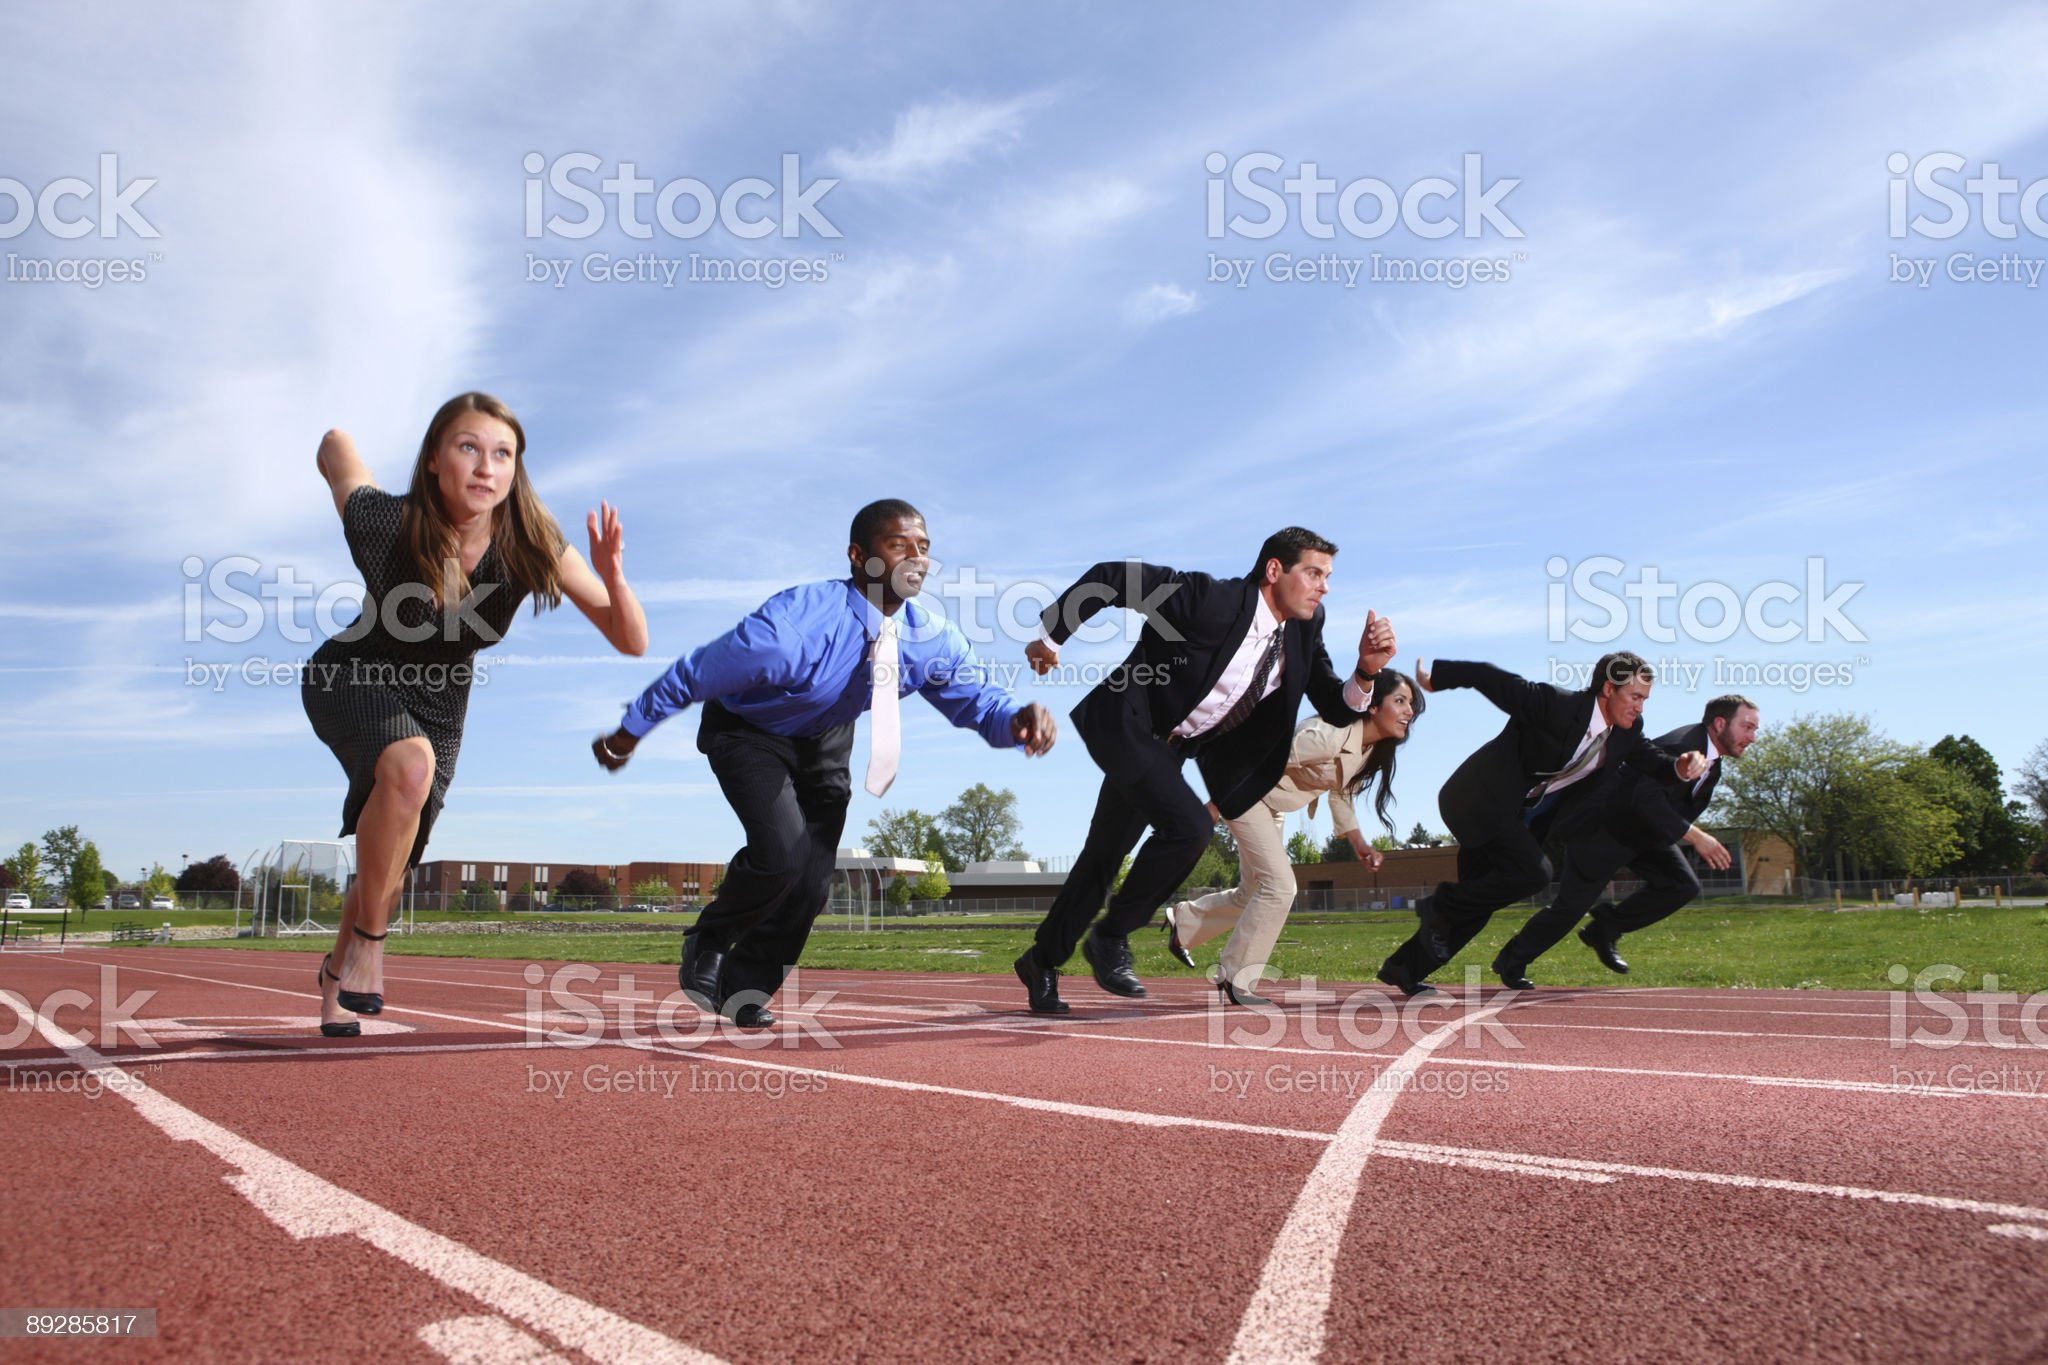 Business people racing on track royalty-free stock photo